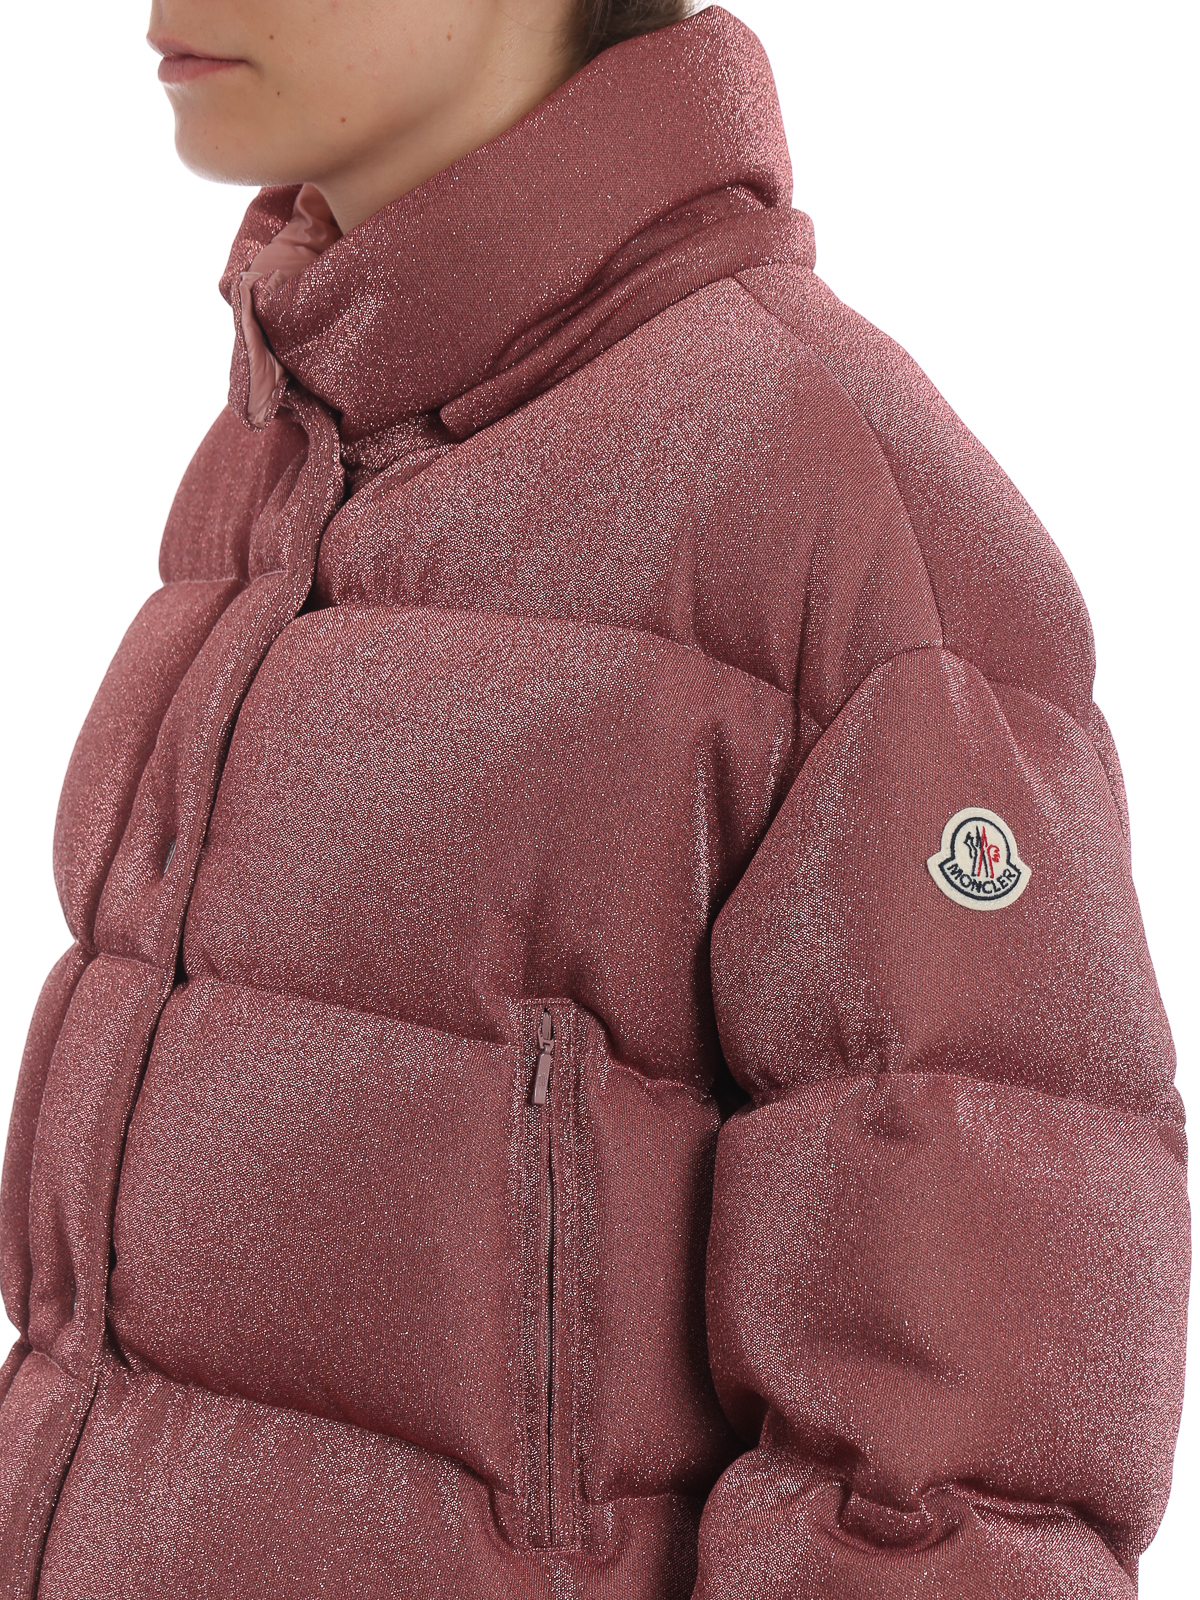 7b60619c4 Moncler - Caille glossy pink puffer jacket - padded jackets - D2 093 ...